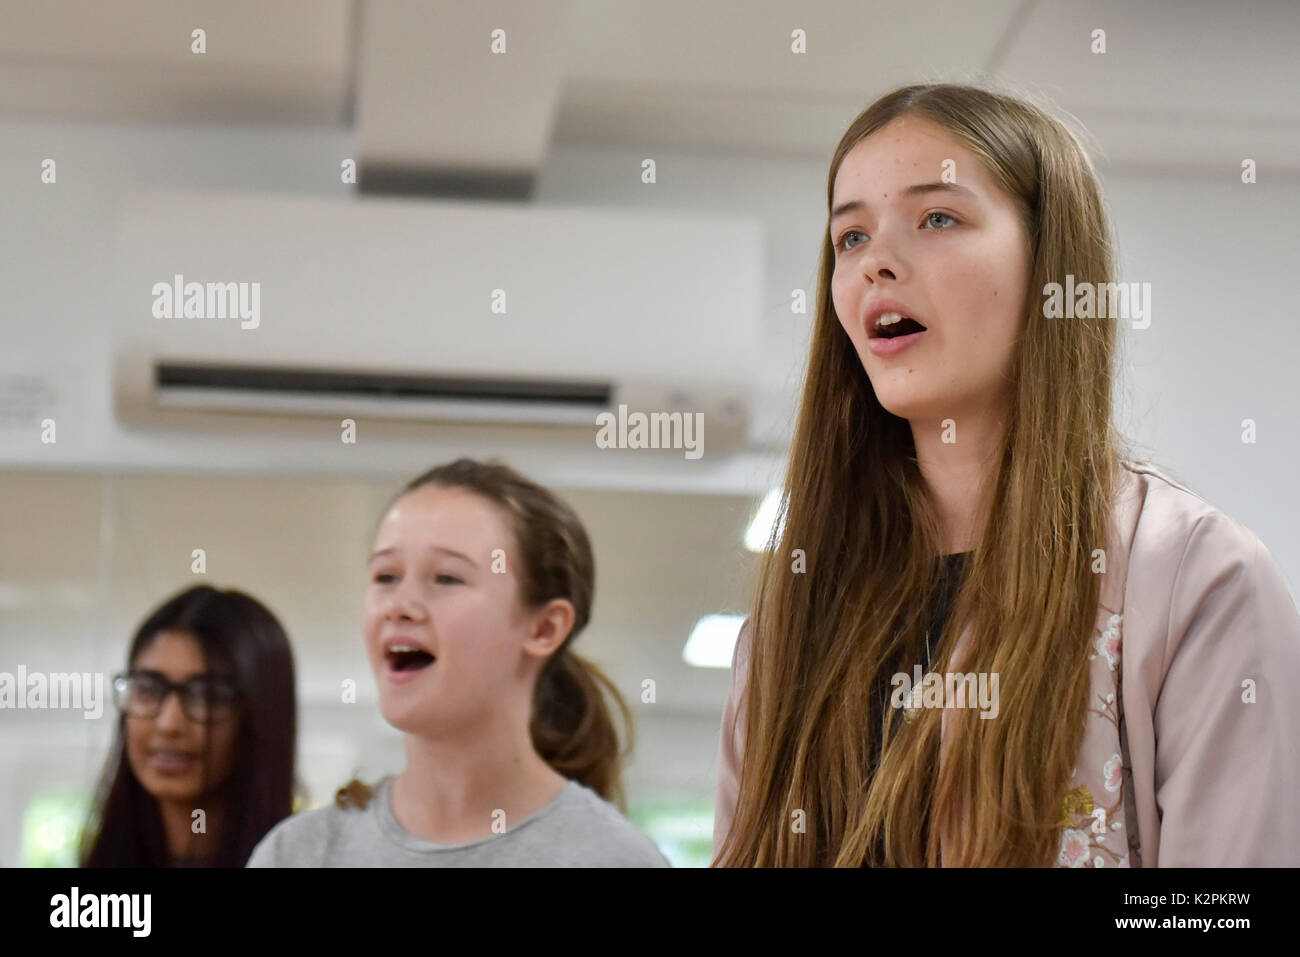 London, UK.  31 August 2017.  Young buskers hoping to be Gigs Champion 2017 take part in a boot camp with industry experts at music studios in the West End ahead of their upcoming Gigs Grand Final at Westfield London.  Gigs is the Mayor of London's annual busking competition for young songwriters and performers aged 11-25 years old. Credit: Stephen Chung / Alamy Live News Stock Photo